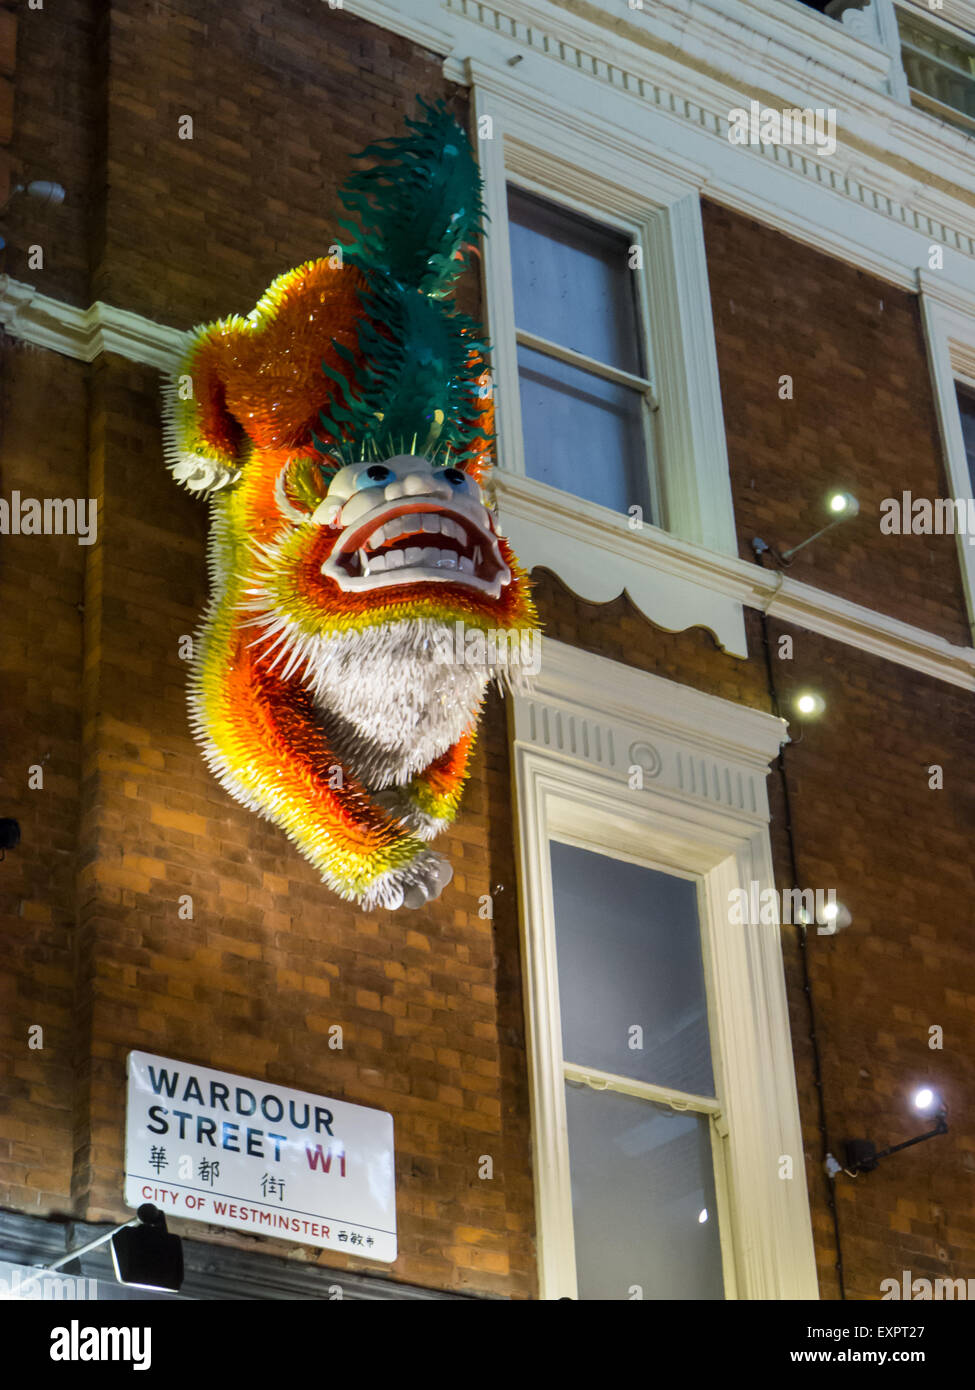 China Town, London, England. Chinese New Year dragon on the wall in Wardour street, Soho. Stock Photo